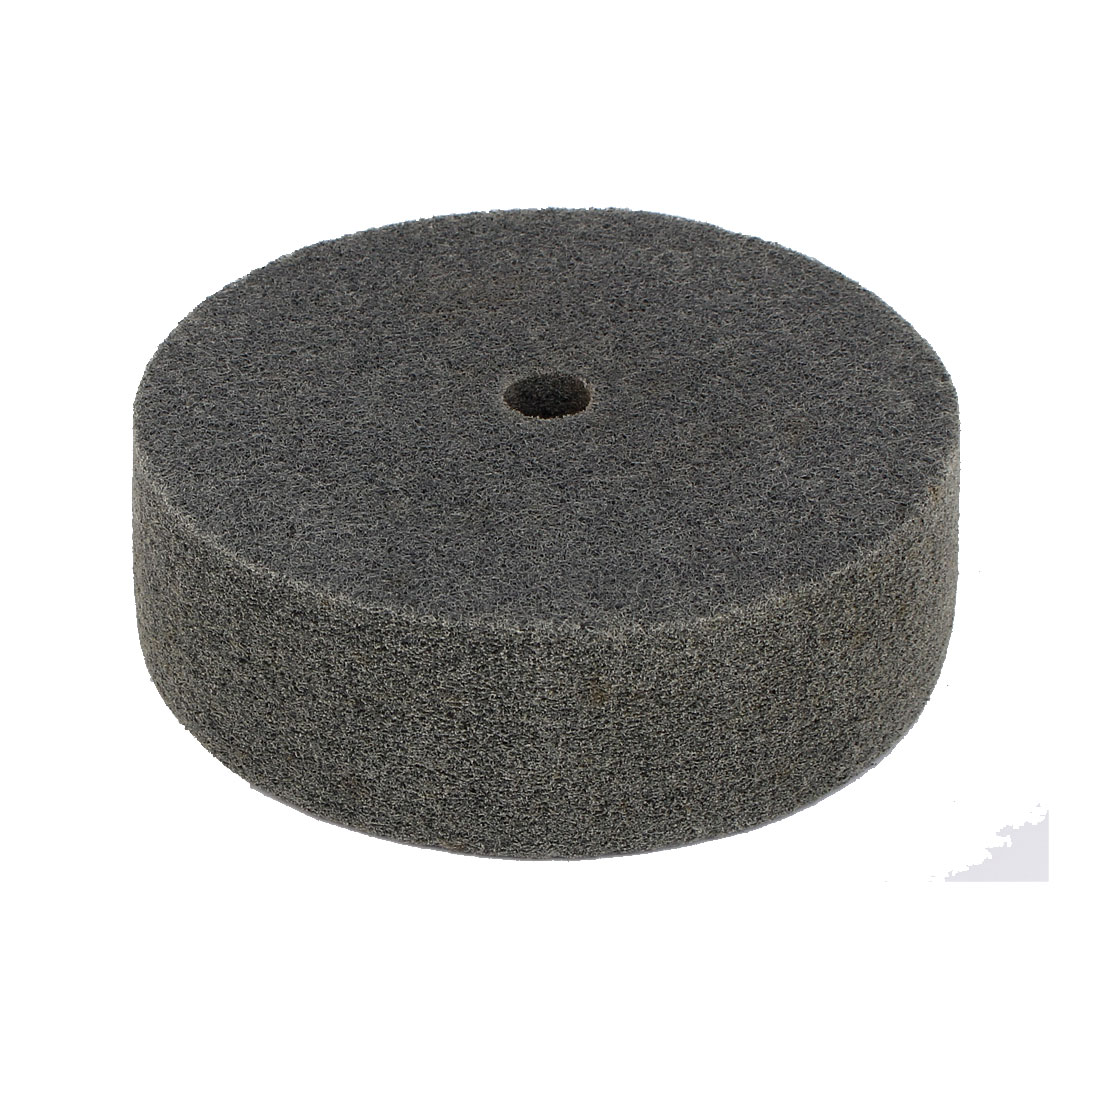 157mm Dia Wheel Abrasive Polishing Buffing Disc Black